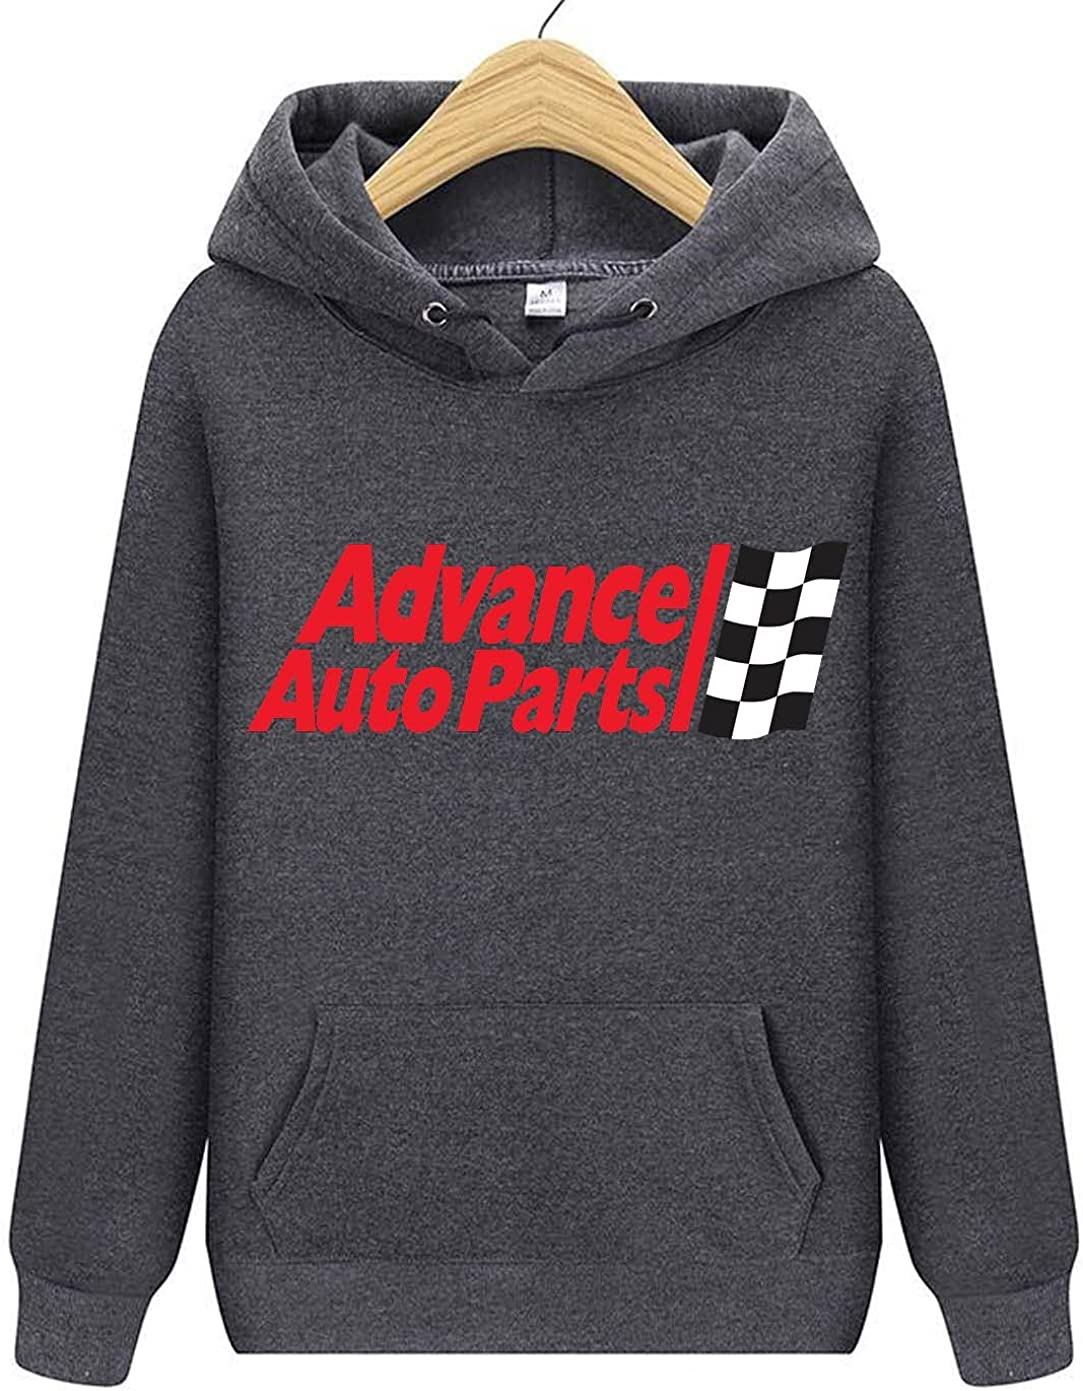 Genuine YuanSH Advance Auto-Parts Printing Outstanding Adult Sweater Basic Hoodie